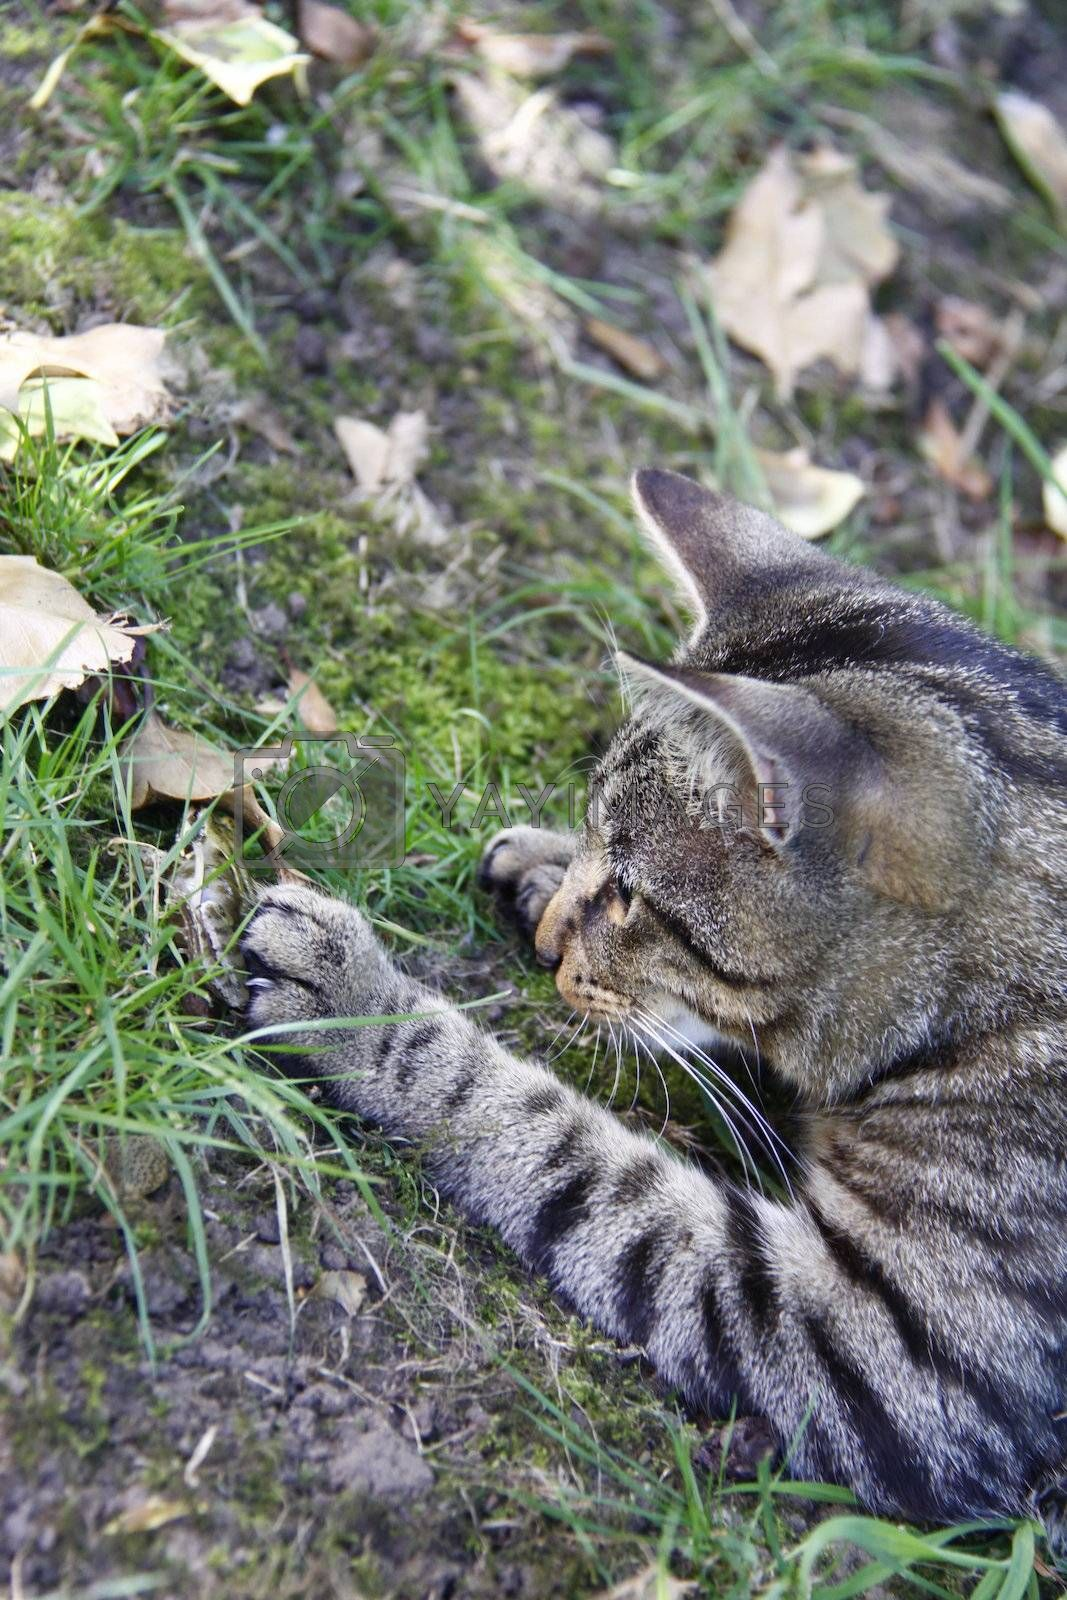 cat playing in the garden with a young toad